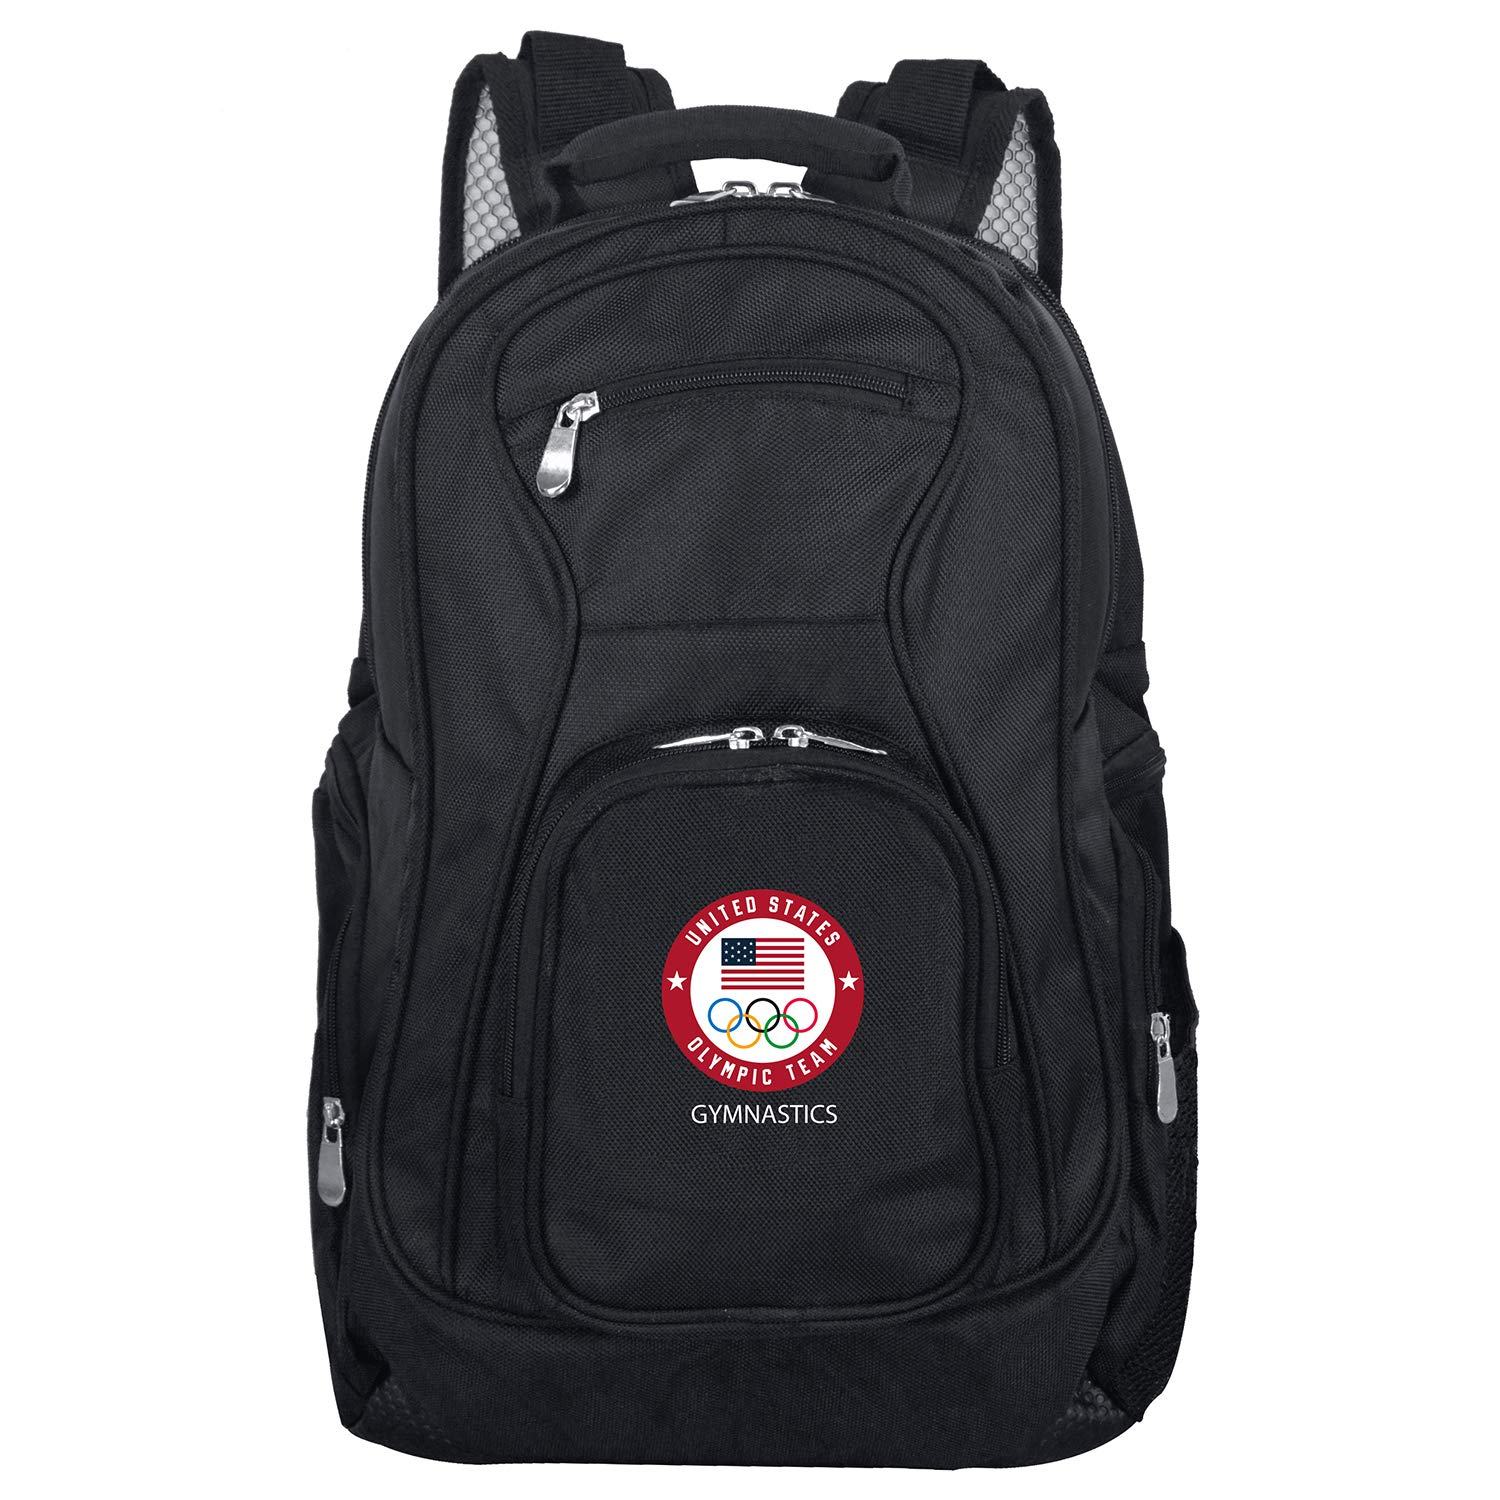 Classic Pins Official Team USA Gymnastics Backpack